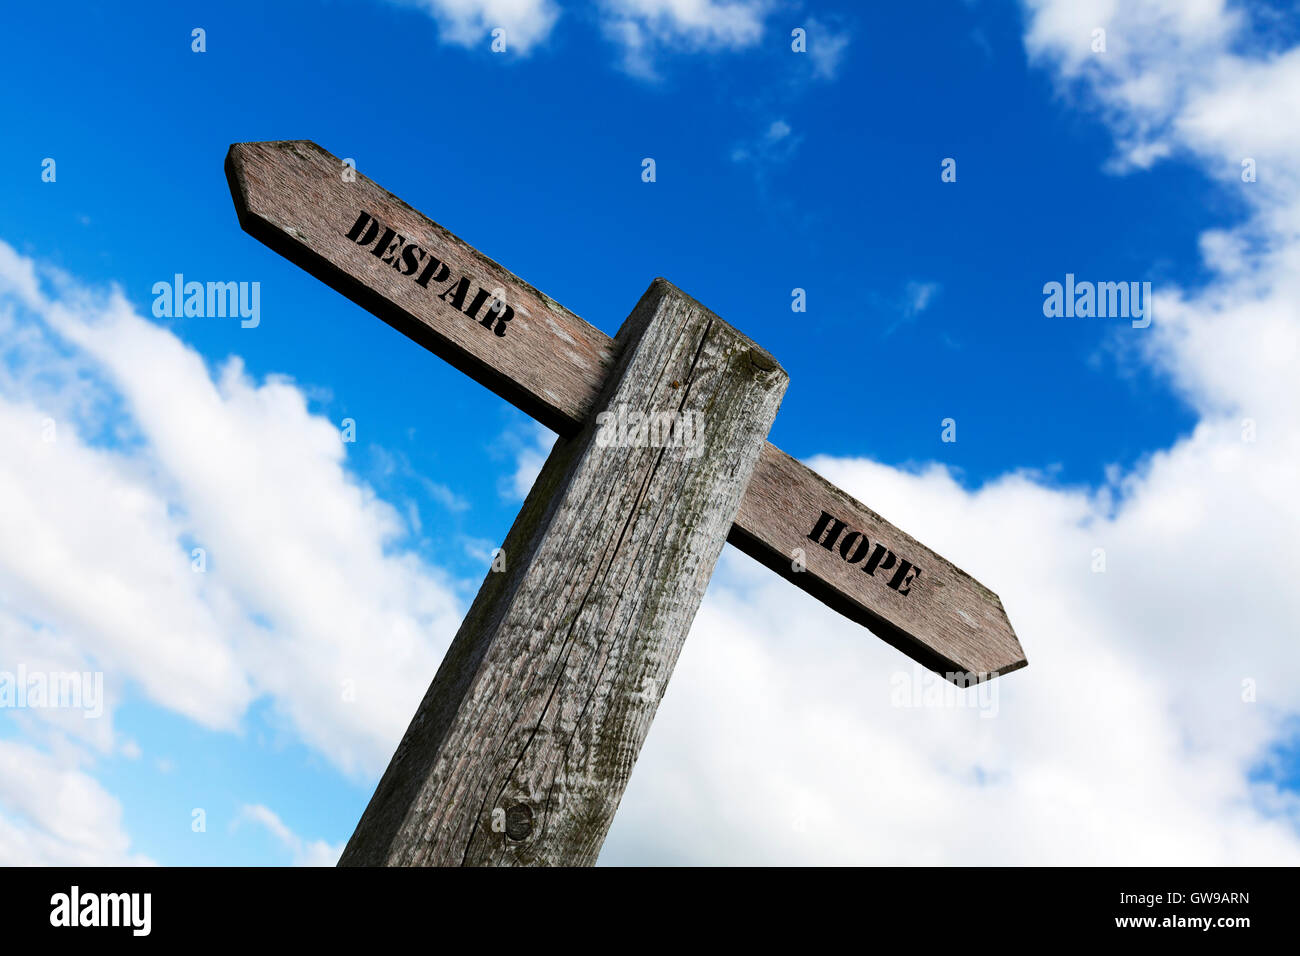 Despair hope grief depression sign words direction directions choice option options choose way in life antonyms - Stock Image